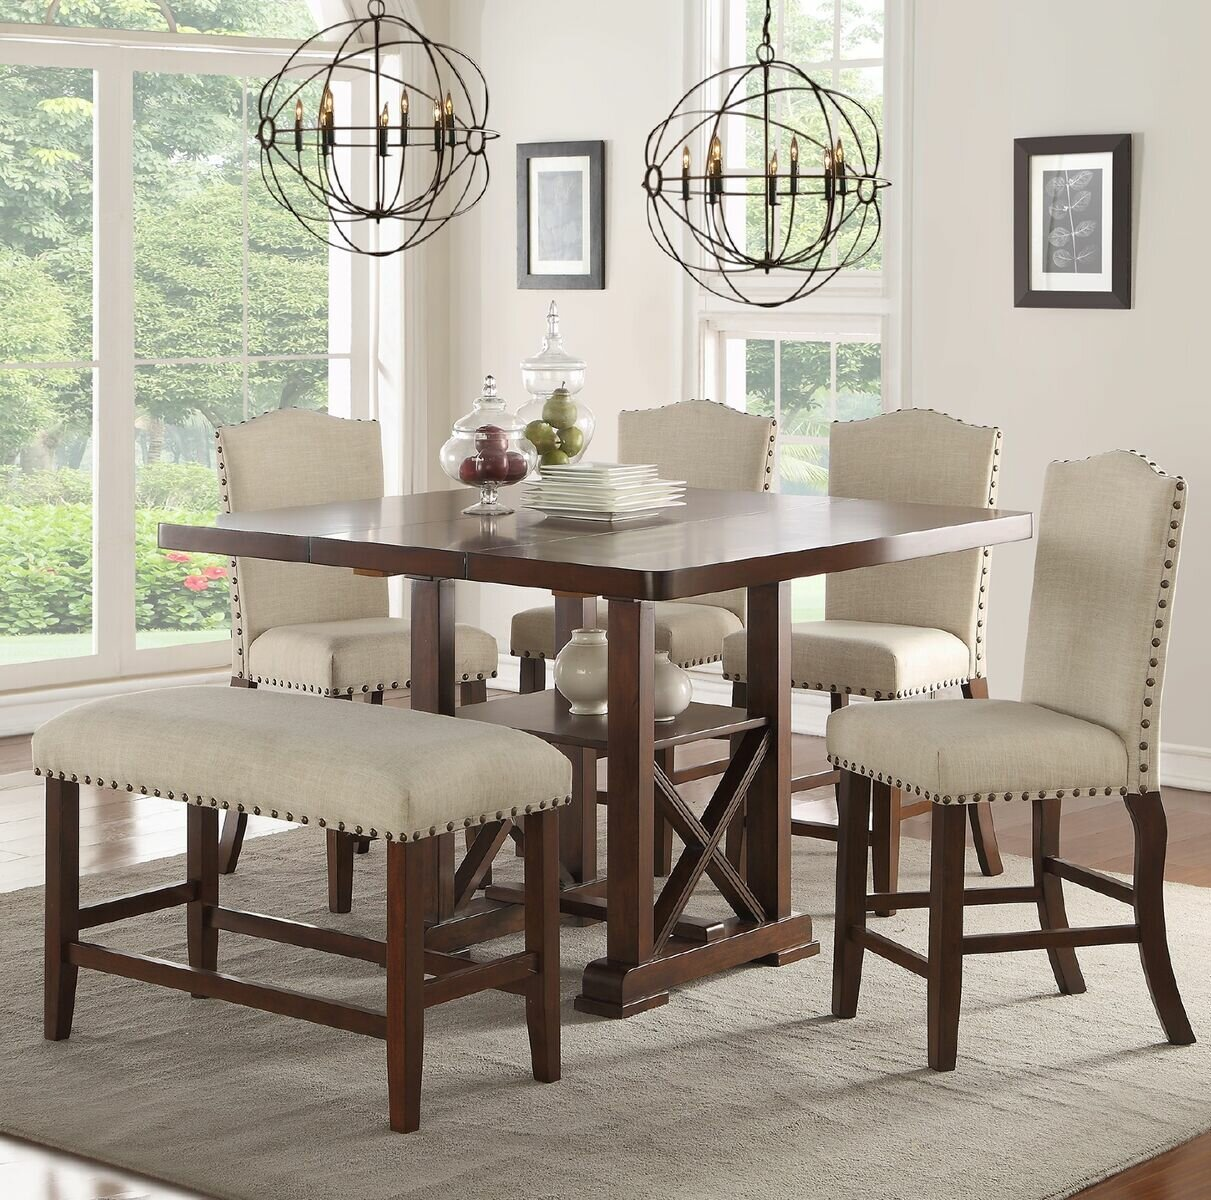 Delicieux Birch Lane™ 6 Piece Counter Height Dining Set U0026 Reviews | Wayfair